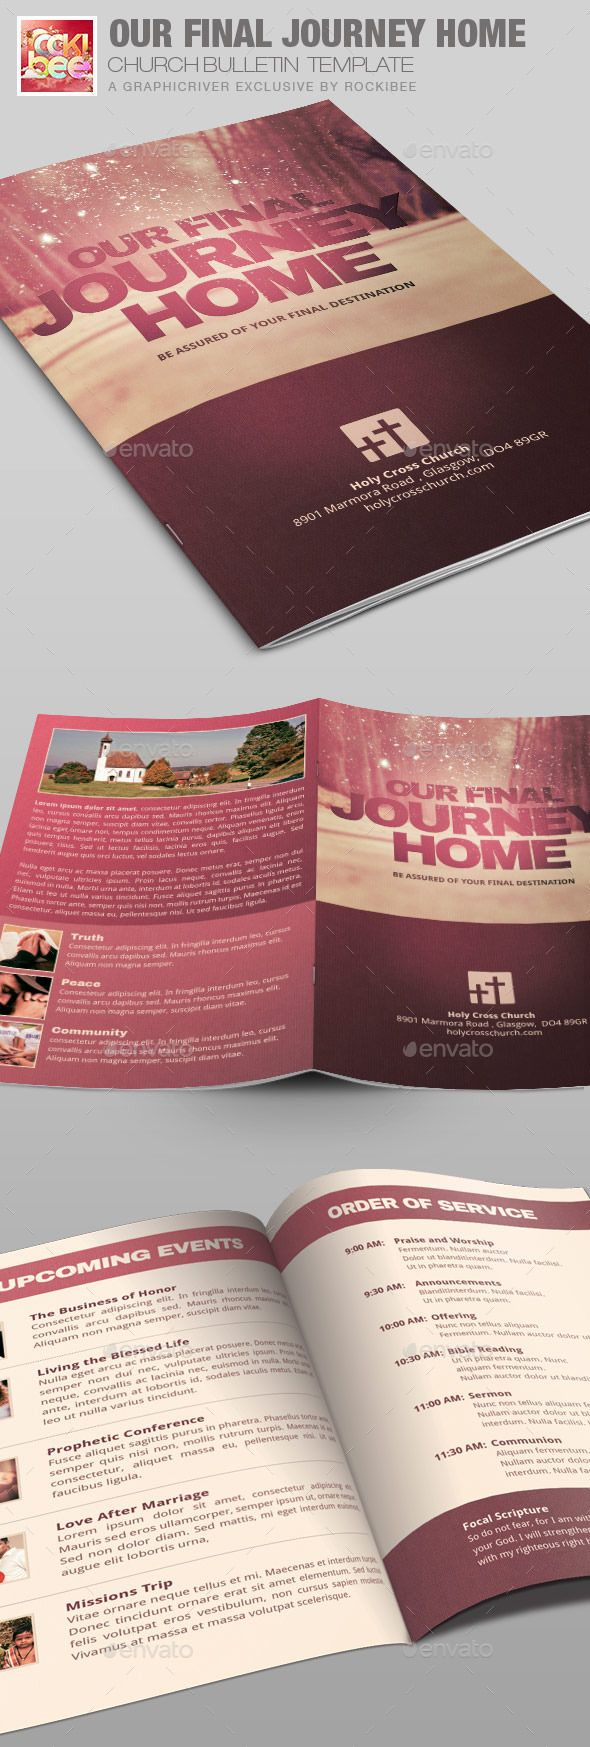 Our Final Journey Church Bulletin Template is sold exclusively on graphicriver, it is especially designed for Churches but can be used for many other events, the file is easy to edit and contains 5-One Click Color Options.